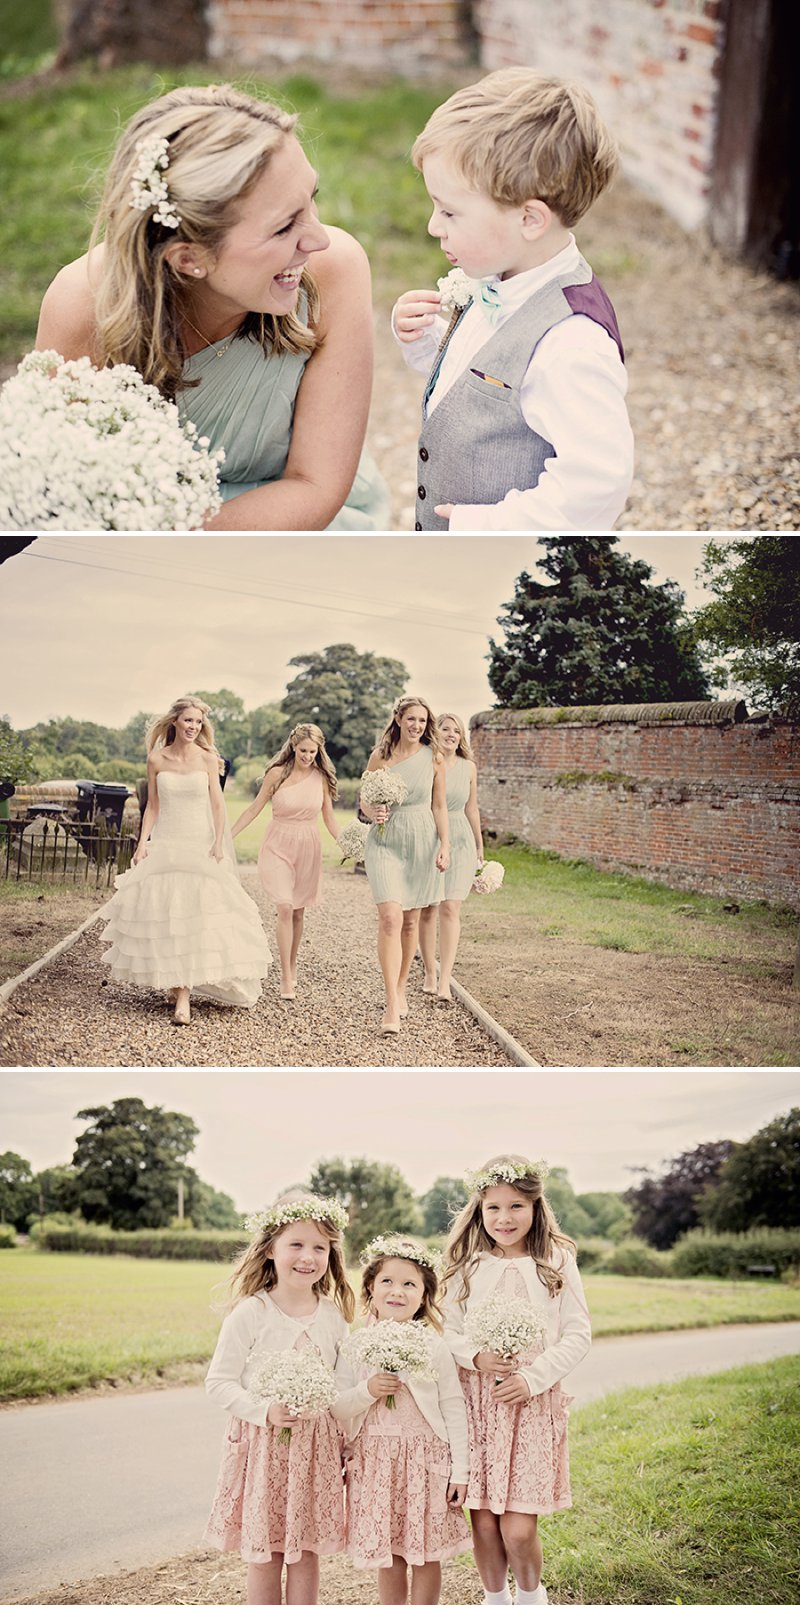 Contemporary Marquee Wedding With A Soft And Romantic Pastel Colour Scheme With Bride In Essense Of Australia Gown And Groom In Tails With Anges De Sucres Macarons And Images By Razia N Jukes Photography 3